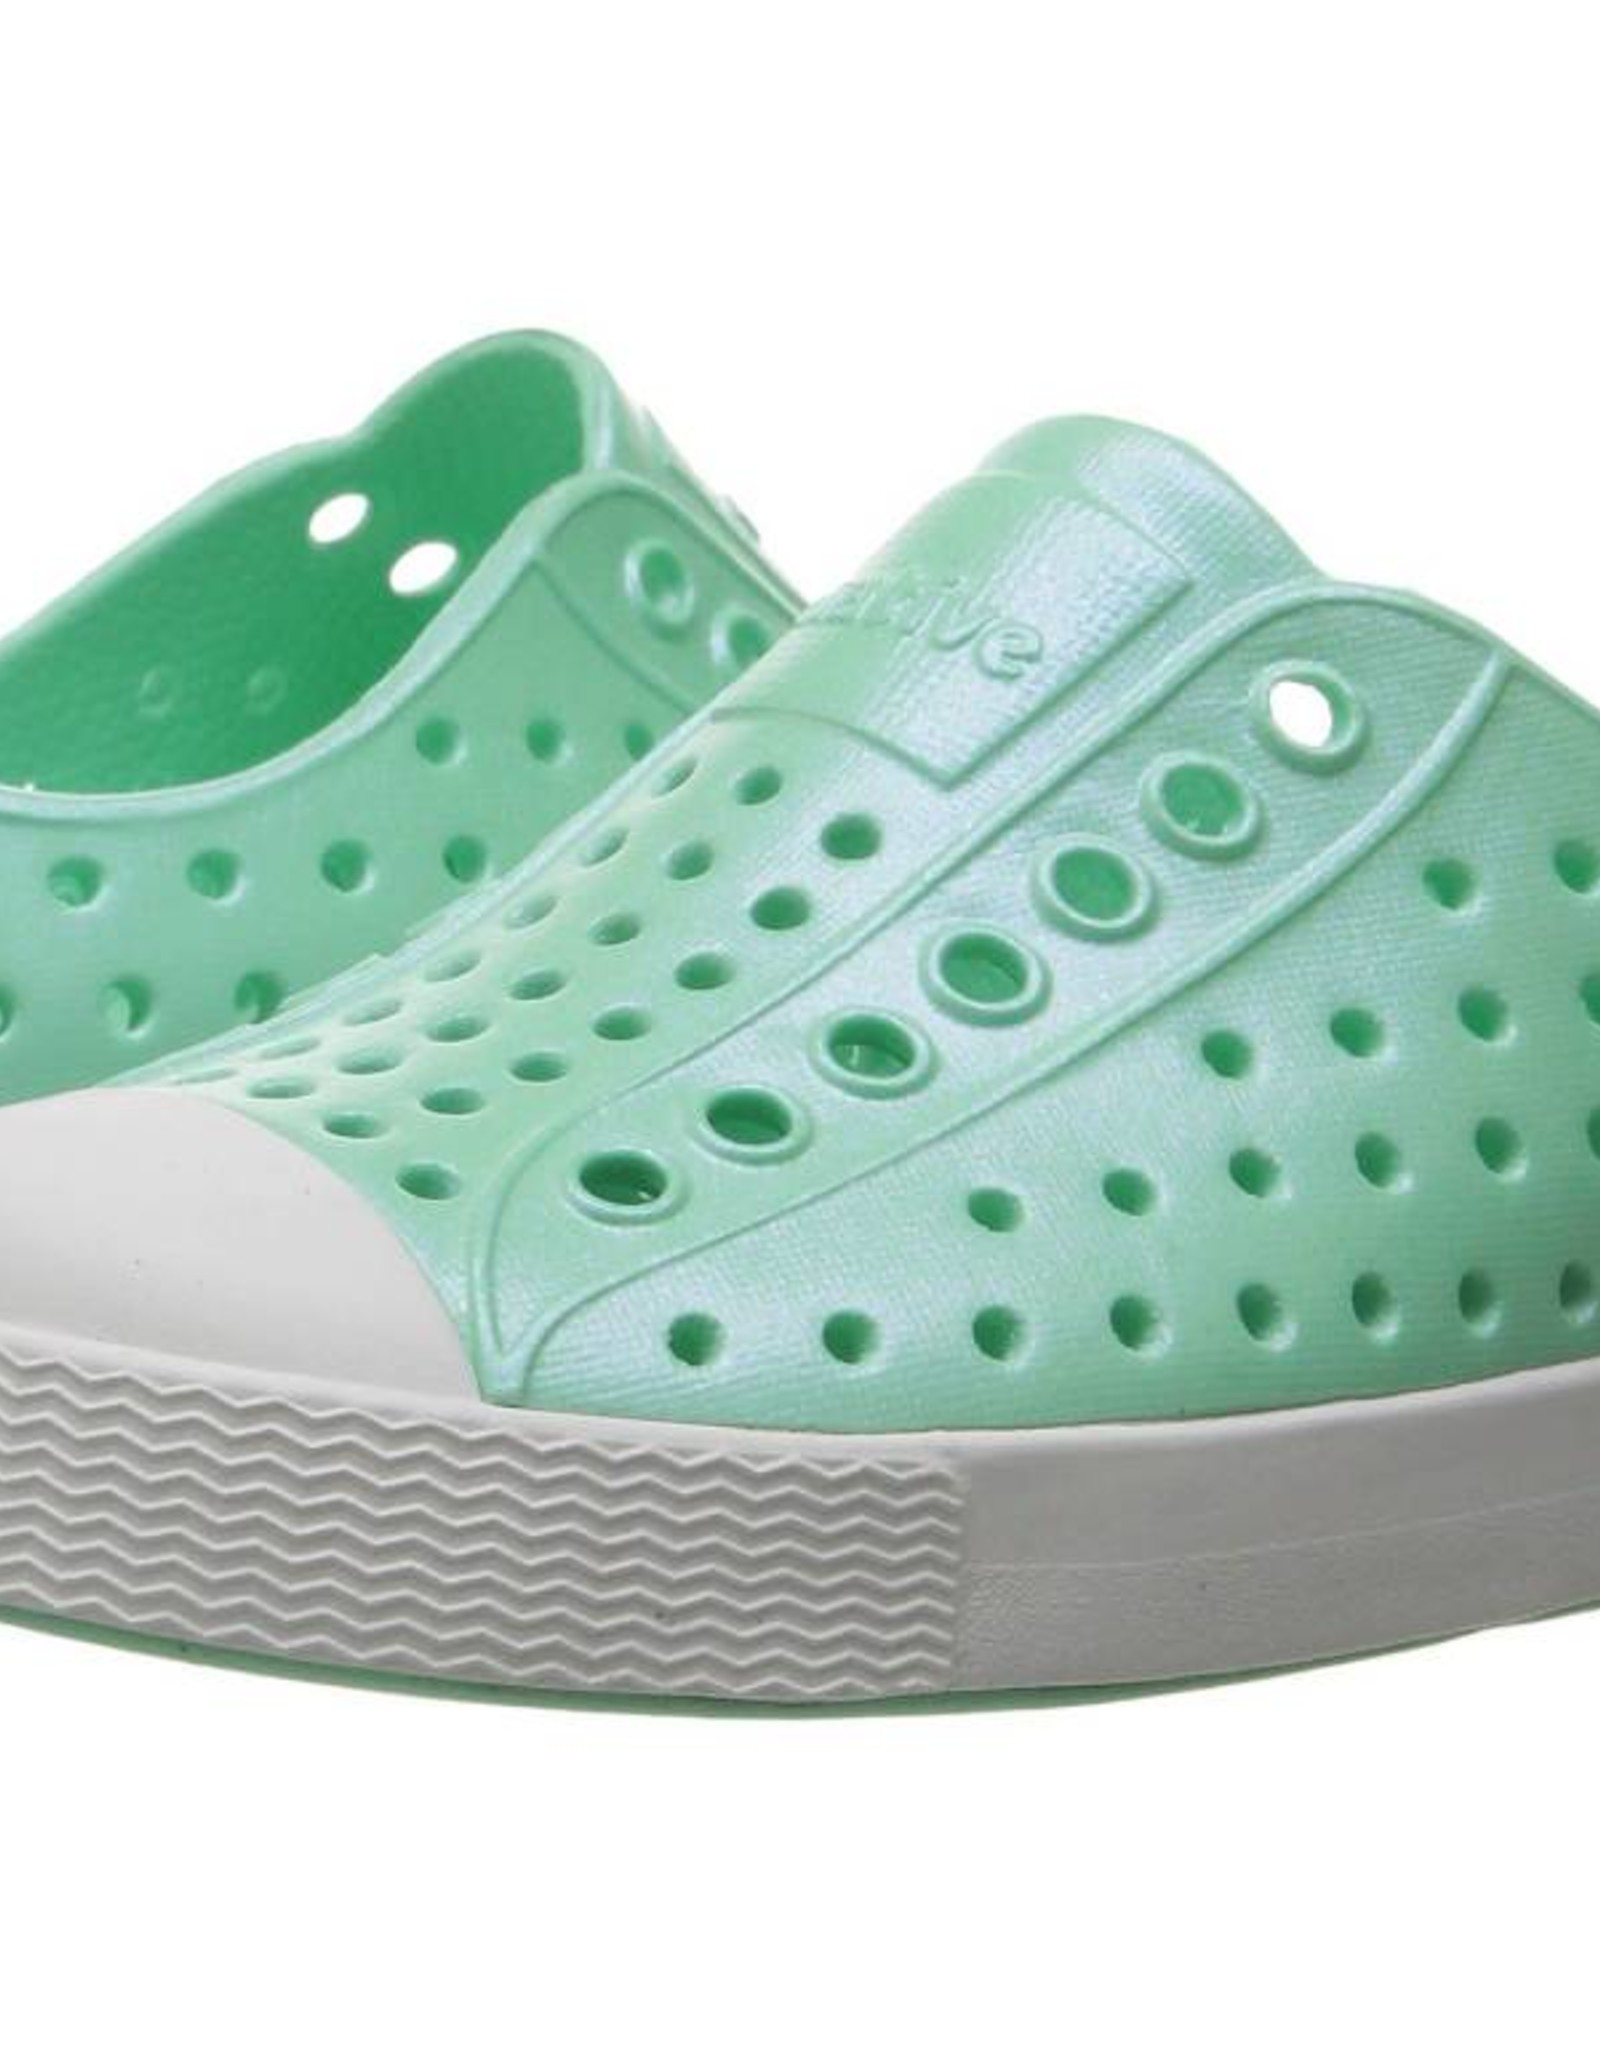 Native Shoes Jefferson in Glass Green/Shell White